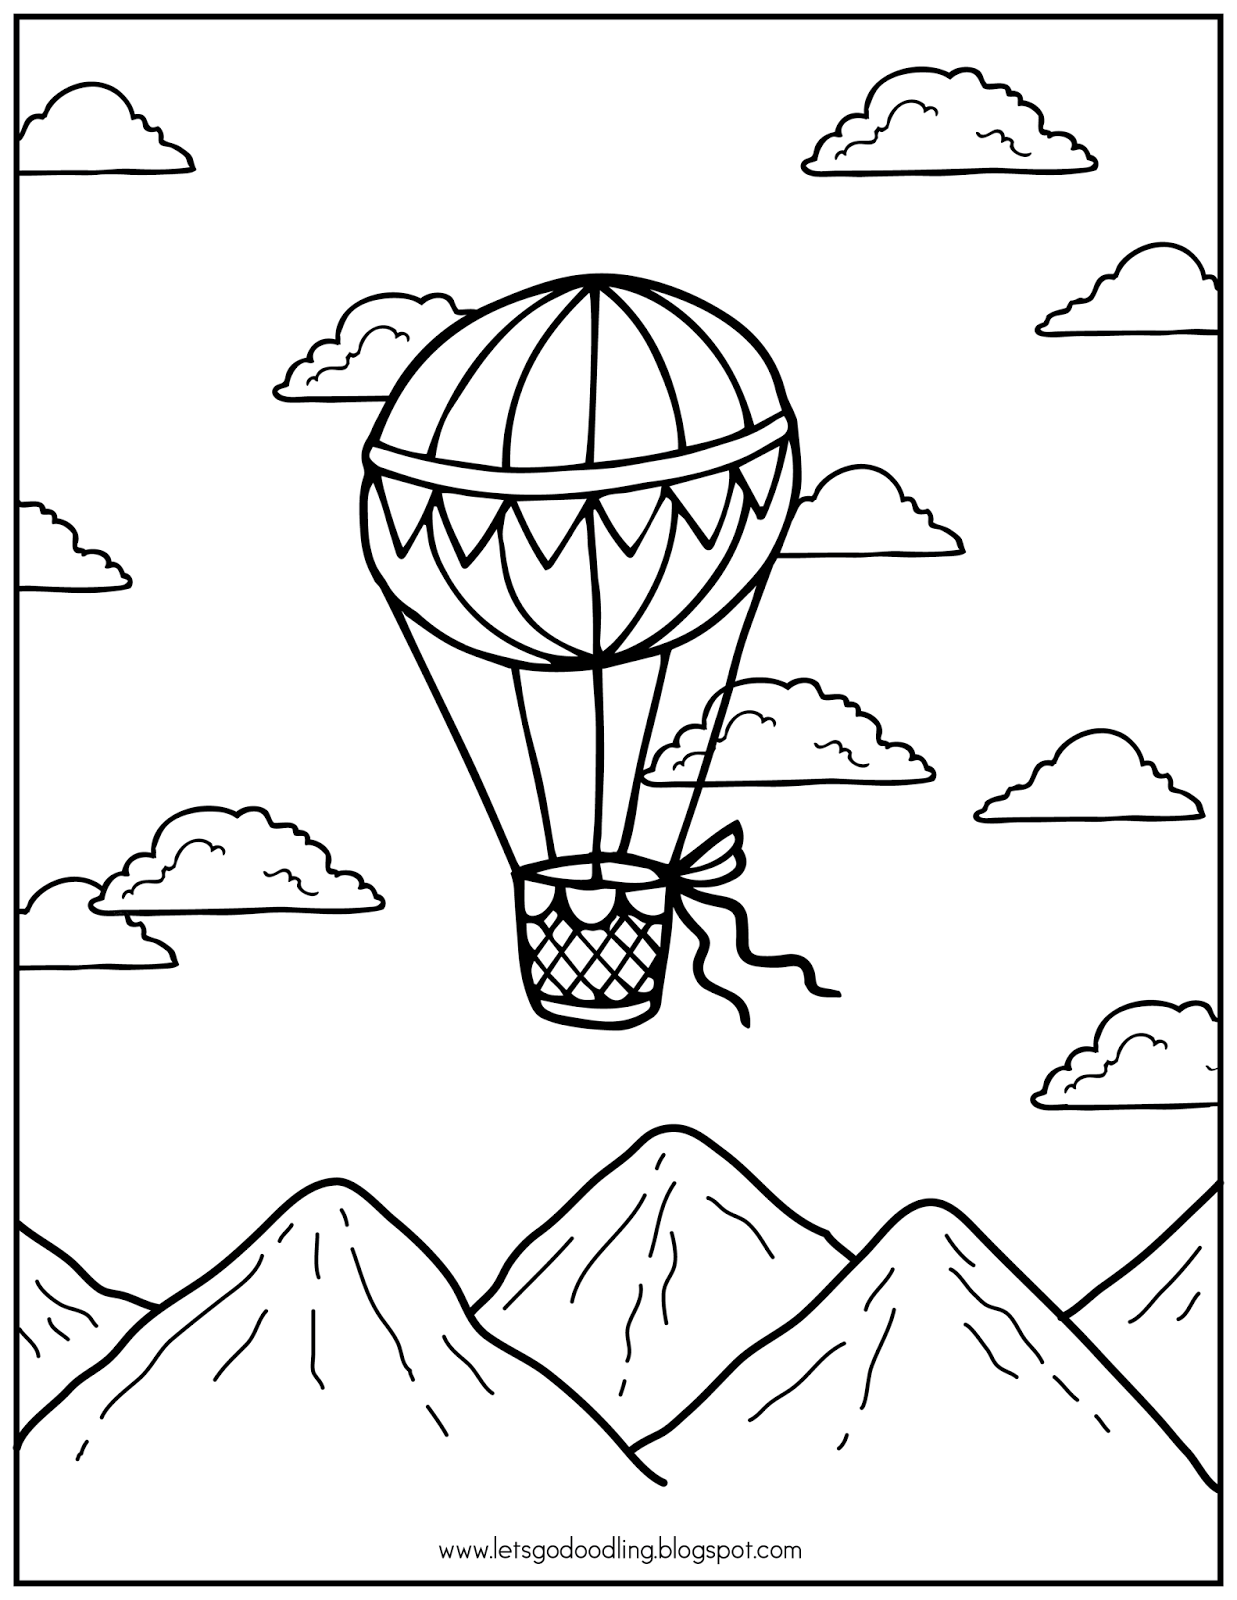 Hot Air Balloons! | Coloring pages, Steampunk coloring, Free ... | 1600x1237